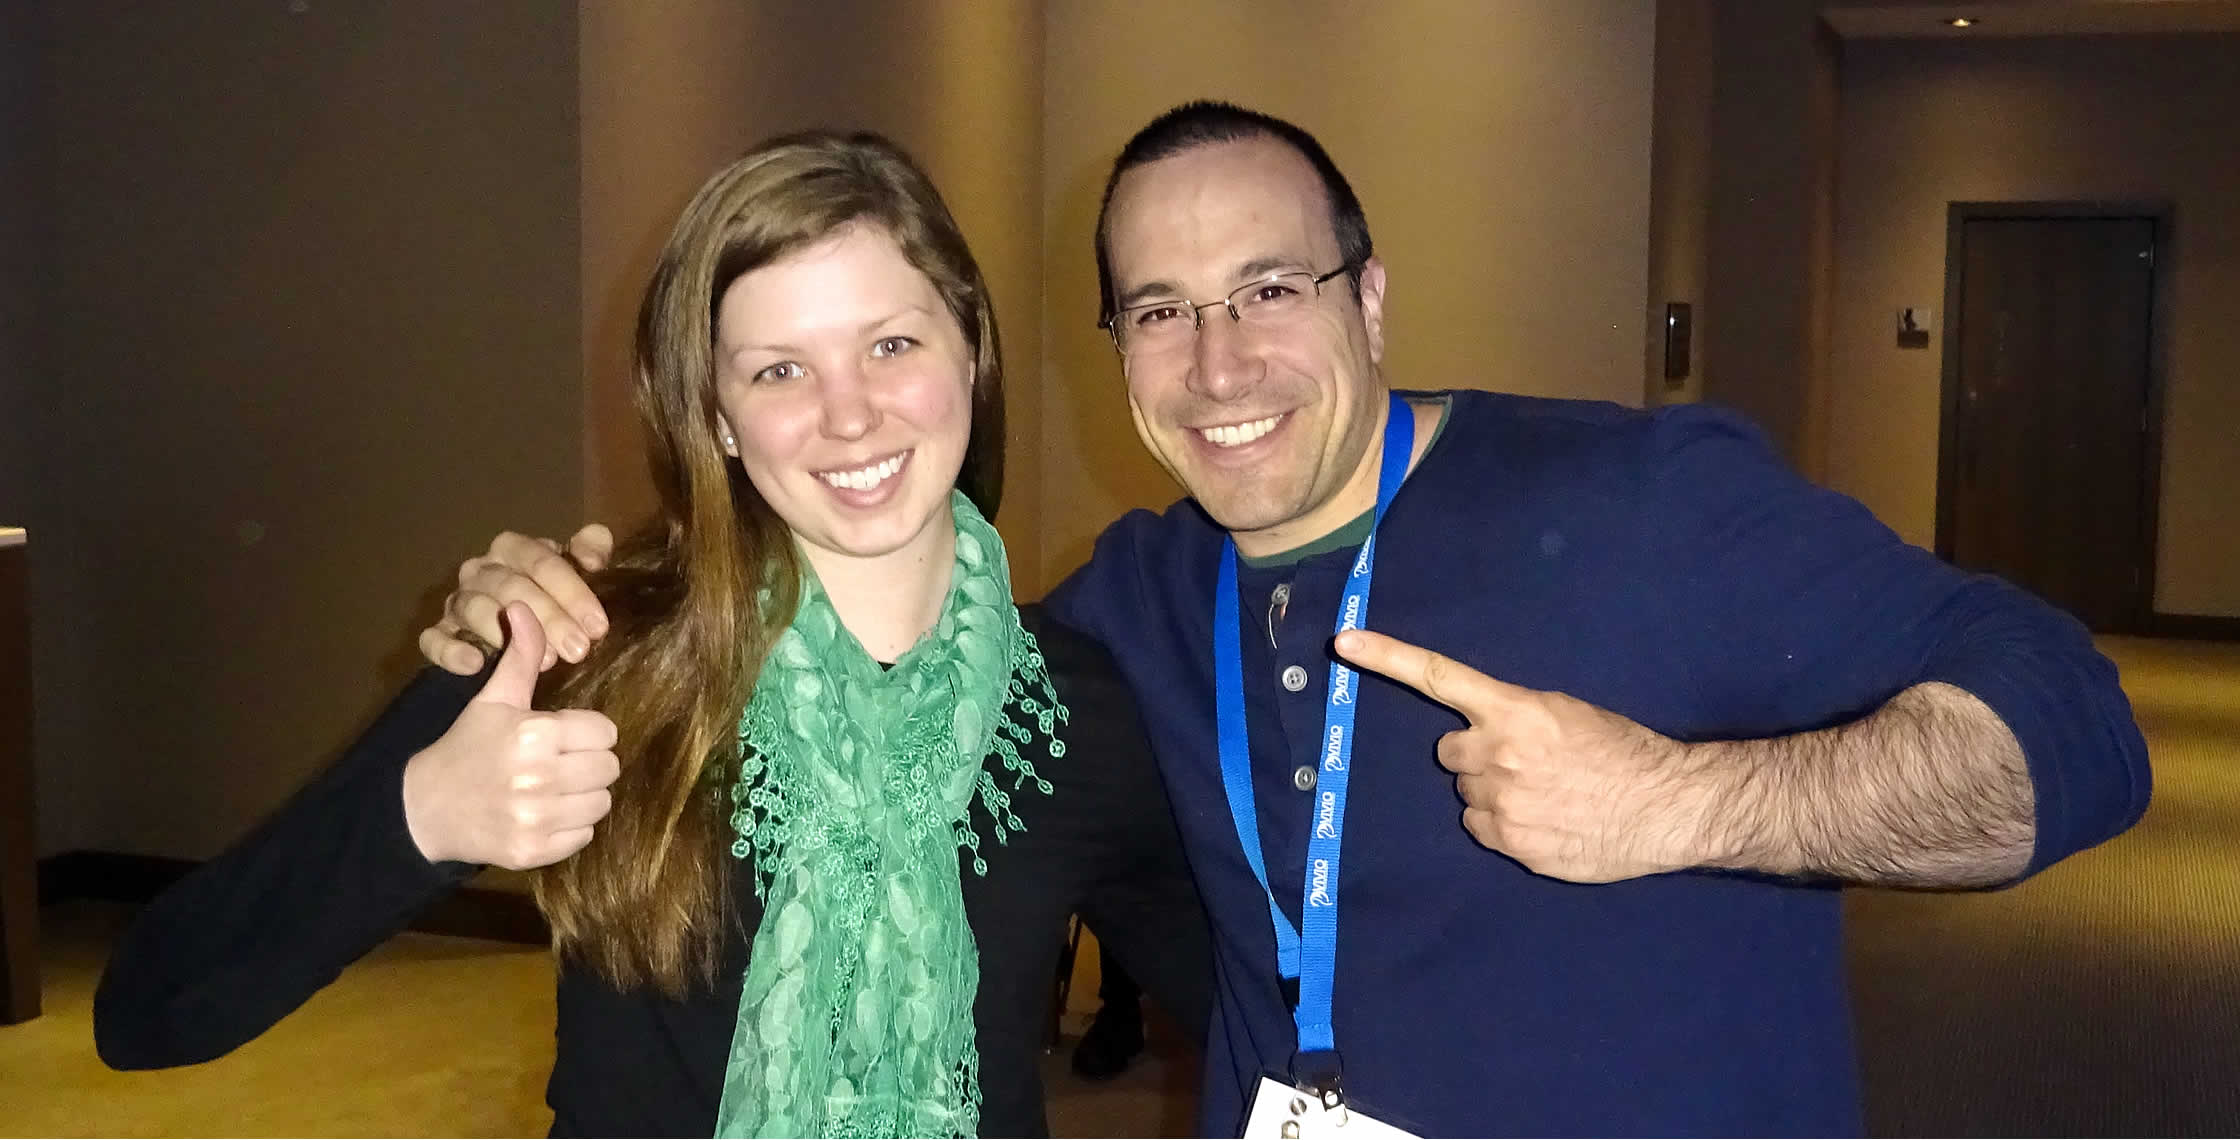 Ben Nadel at cf.Objective() 2014 (Bloomington, MN) with: Madeline Johnsen